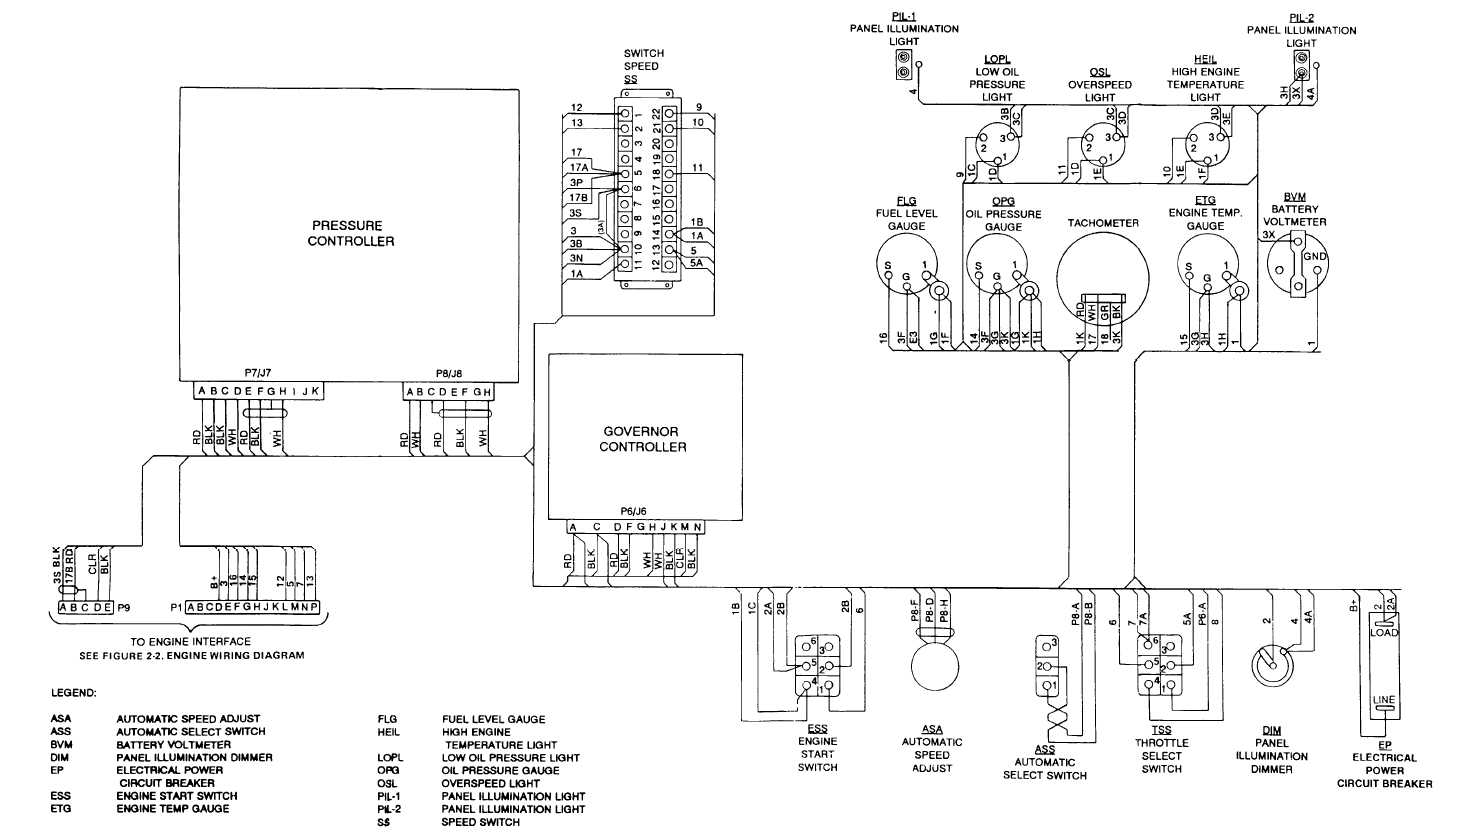 Figure 2 1 Control Panel Wiring Diagram Sheet Of 4 Temp Gauge